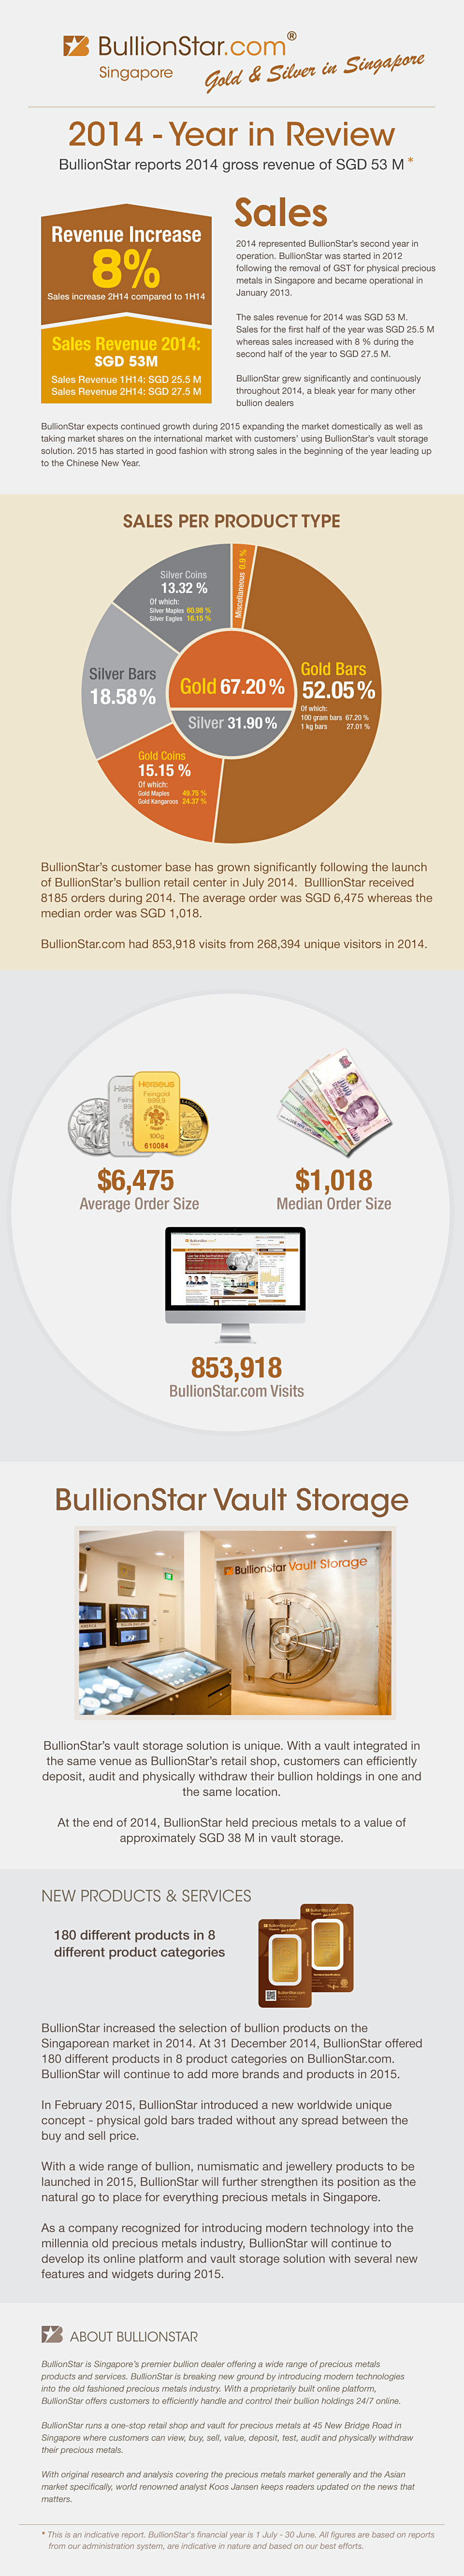 BullionStar Financials 2014 - Year in Review